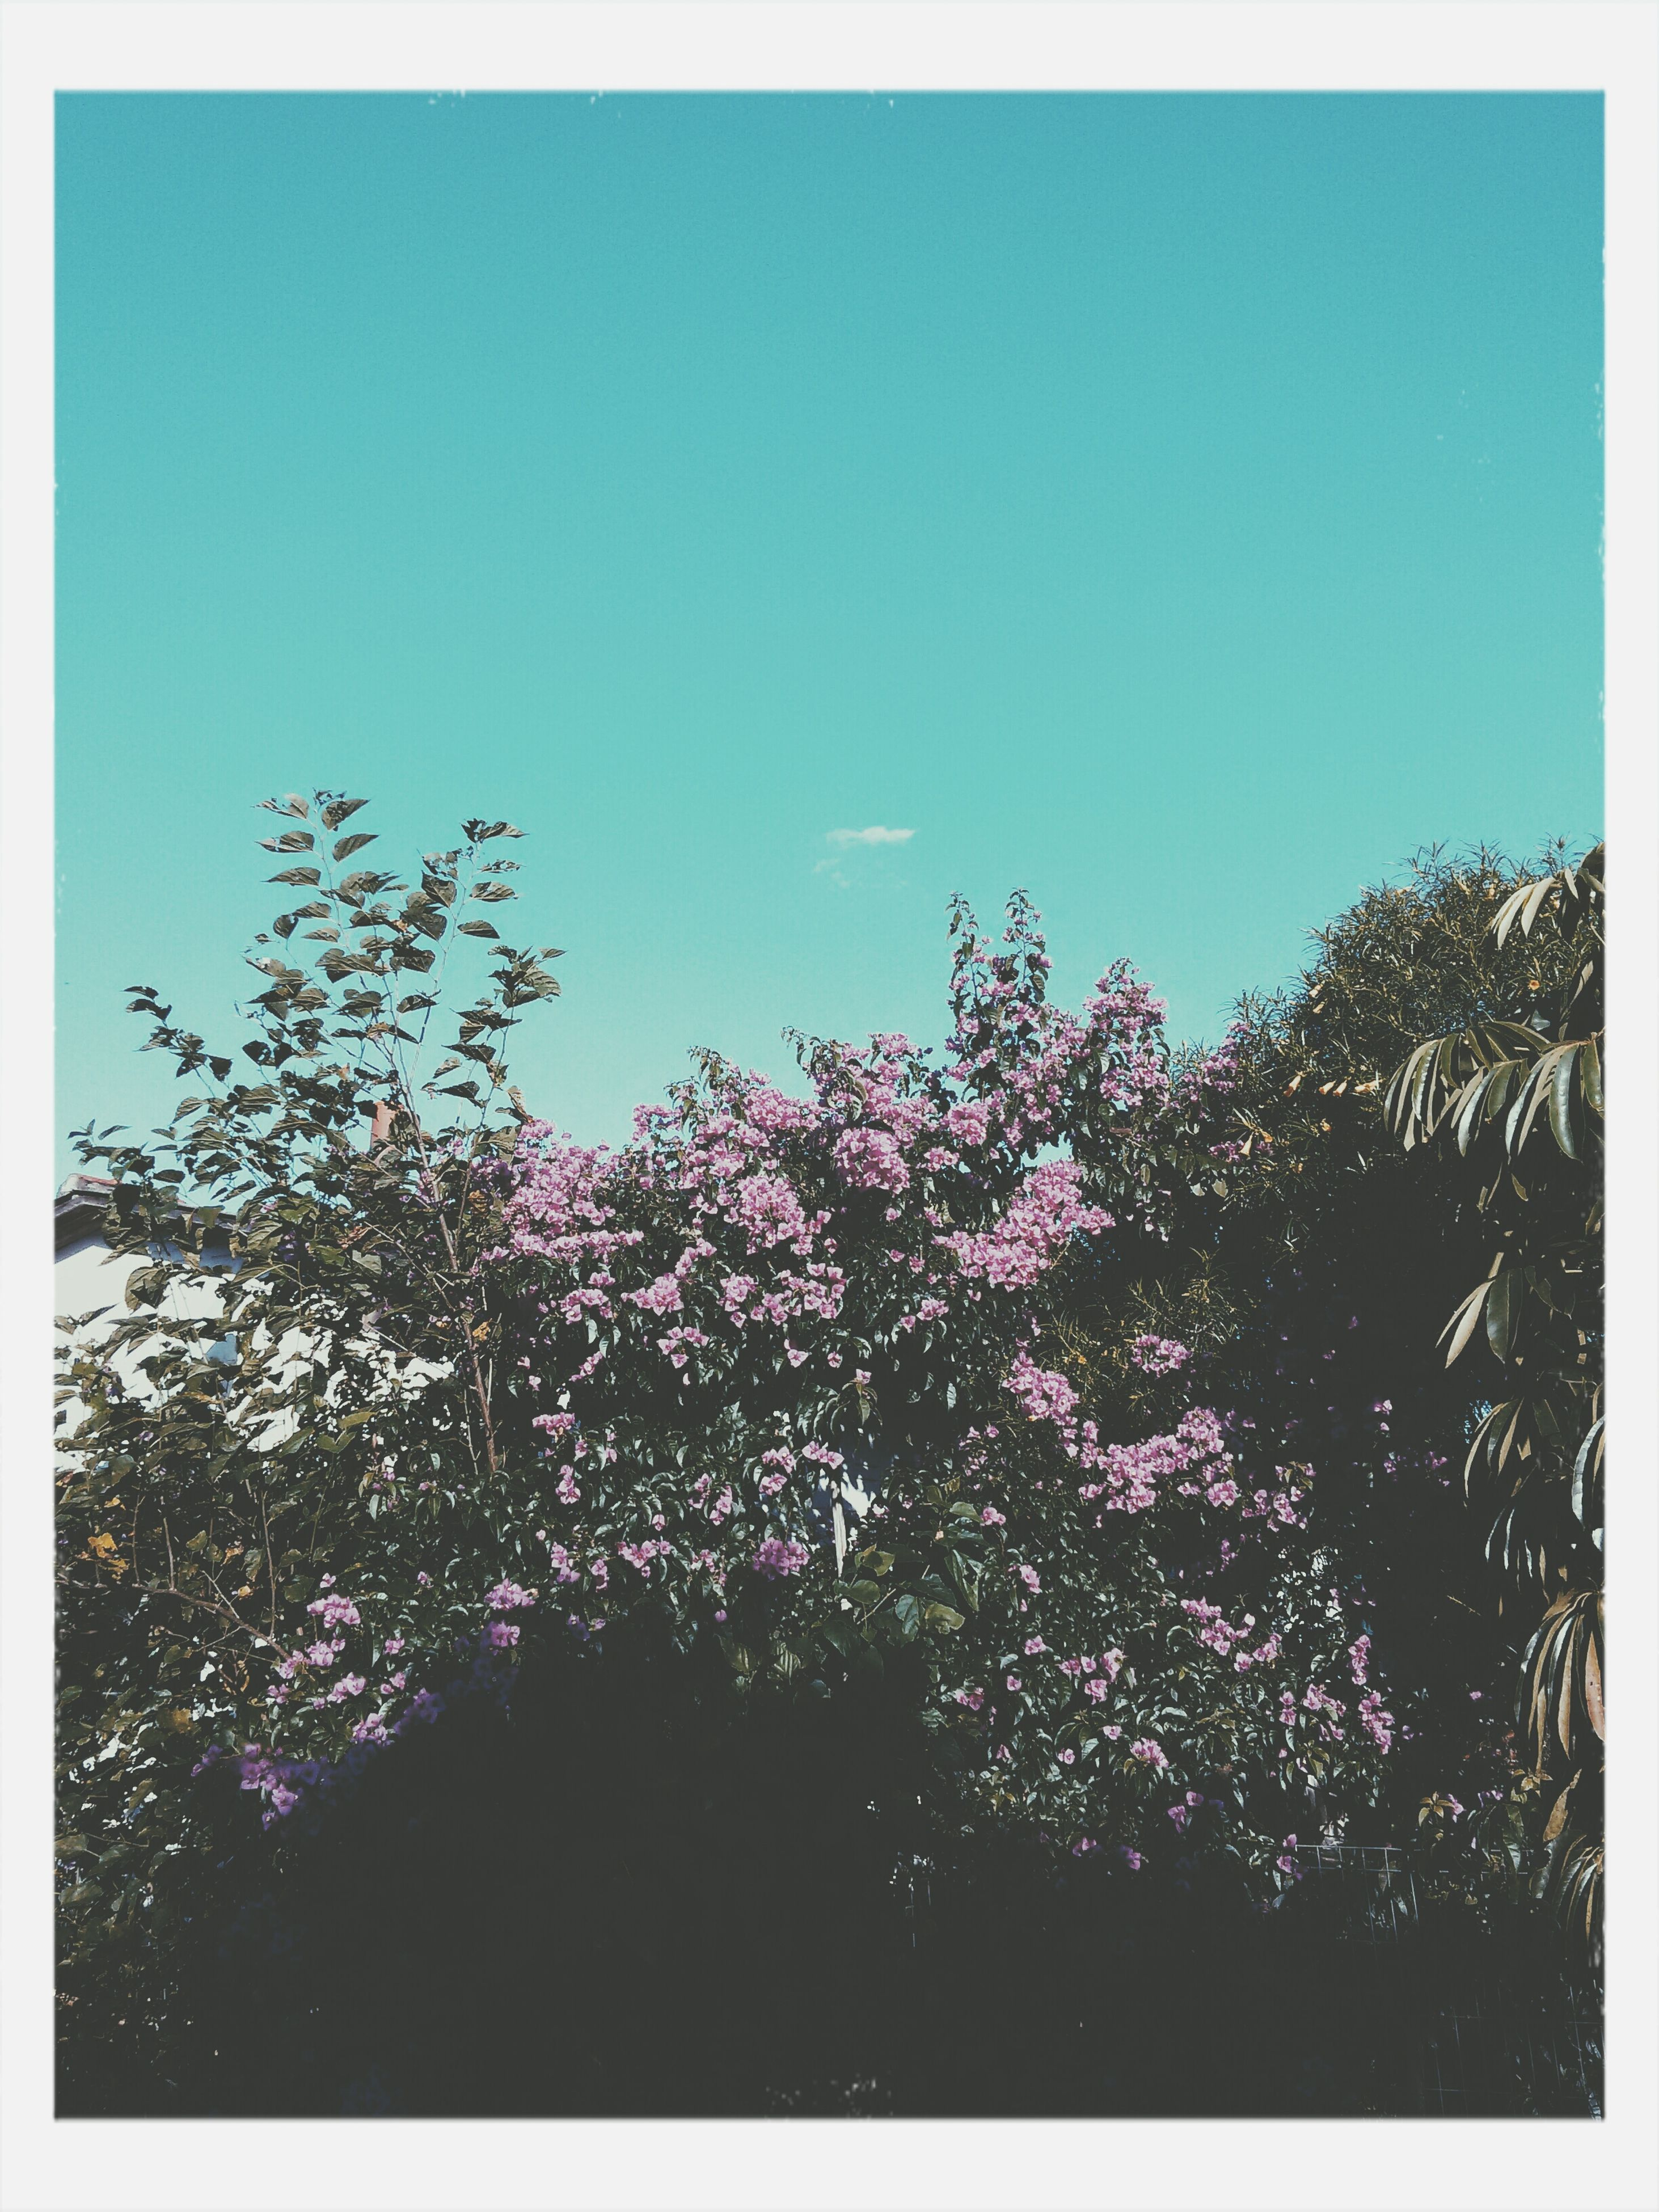 tree, clear sky, flower, growth, blue, low angle view, beauty in nature, transfer print, copy space, nature, auto post production filter, freshness, sky, purple, branch, tranquility, blooming, fragility, outdoors, blossom